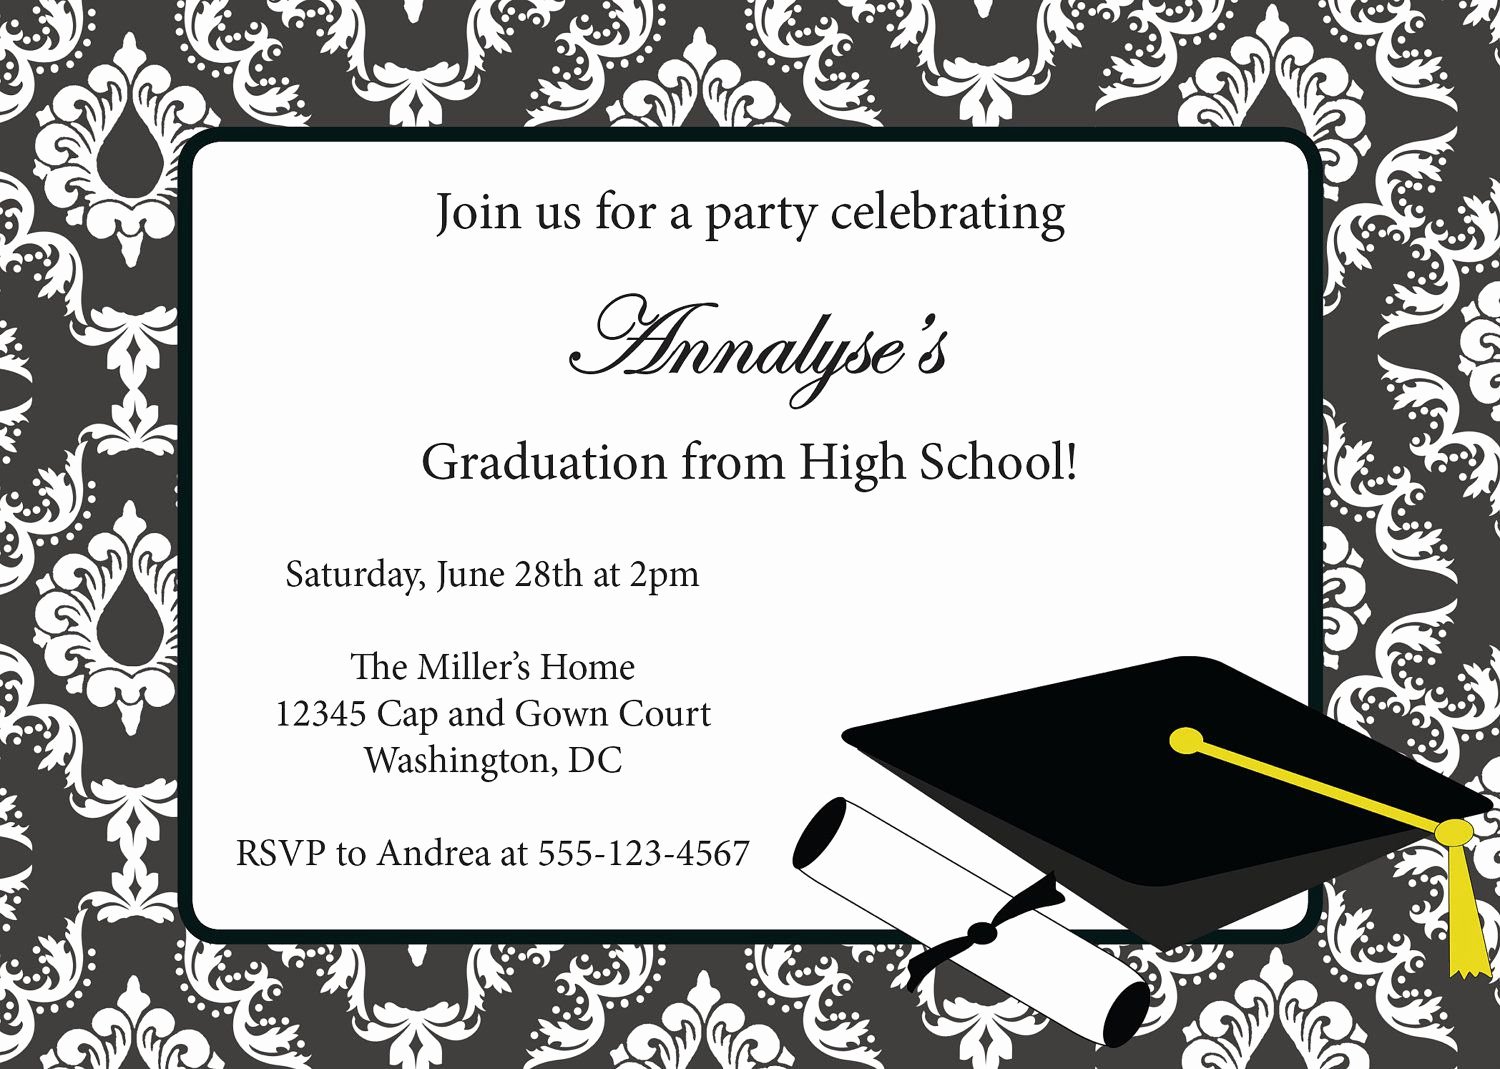 Samples Of Graduation Invitation Fresh Graduation Invitations Invitation Card for Graduation